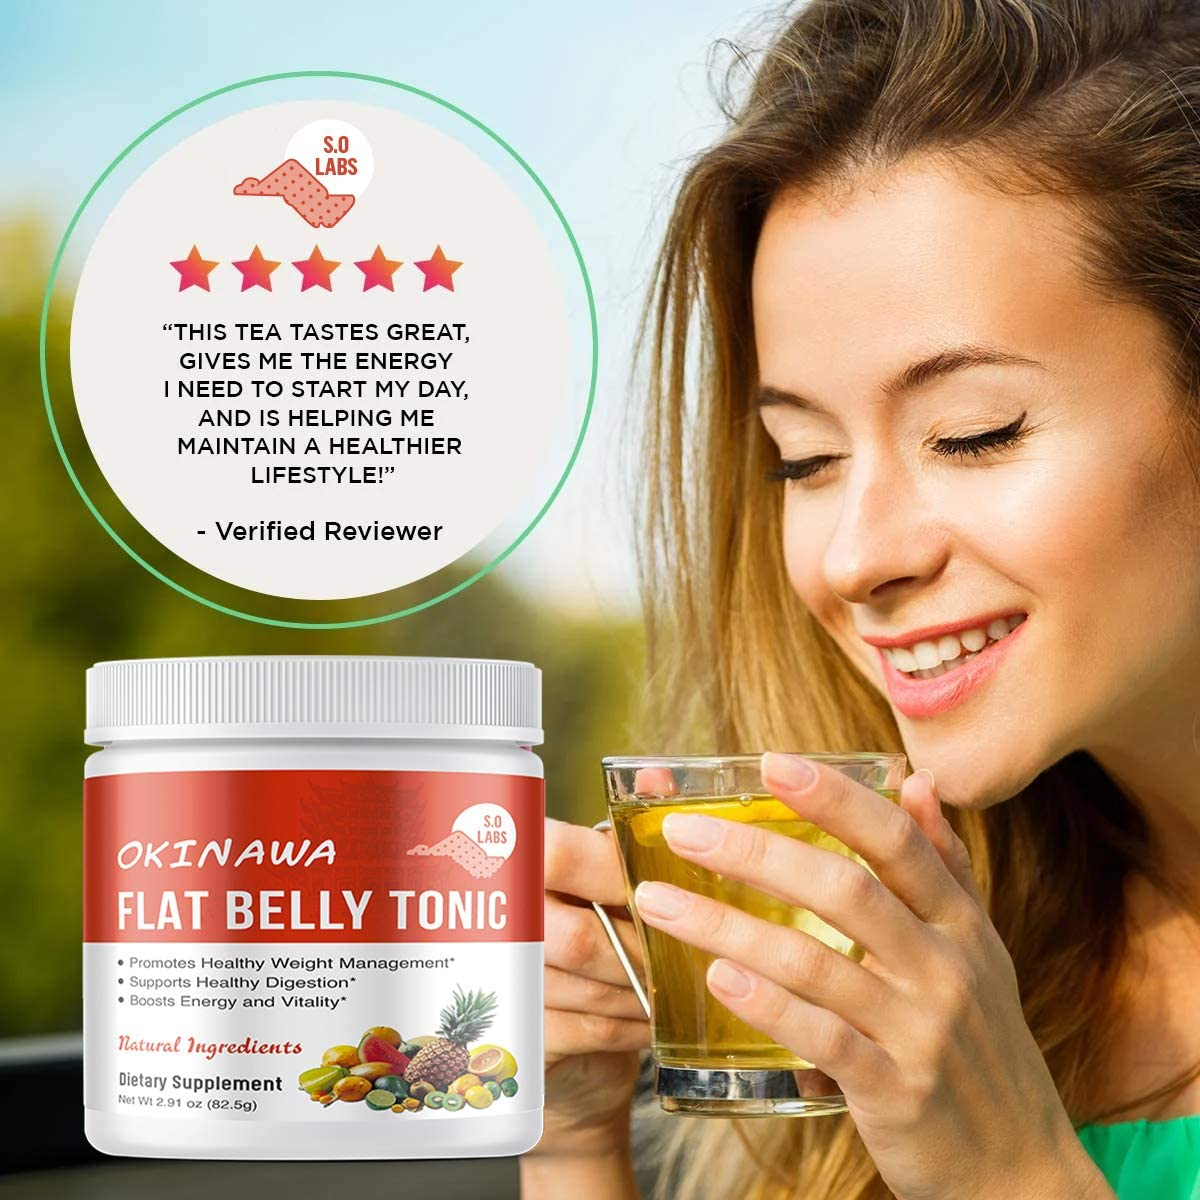 Does Okinawa Flat Belly Tonic Actually Work